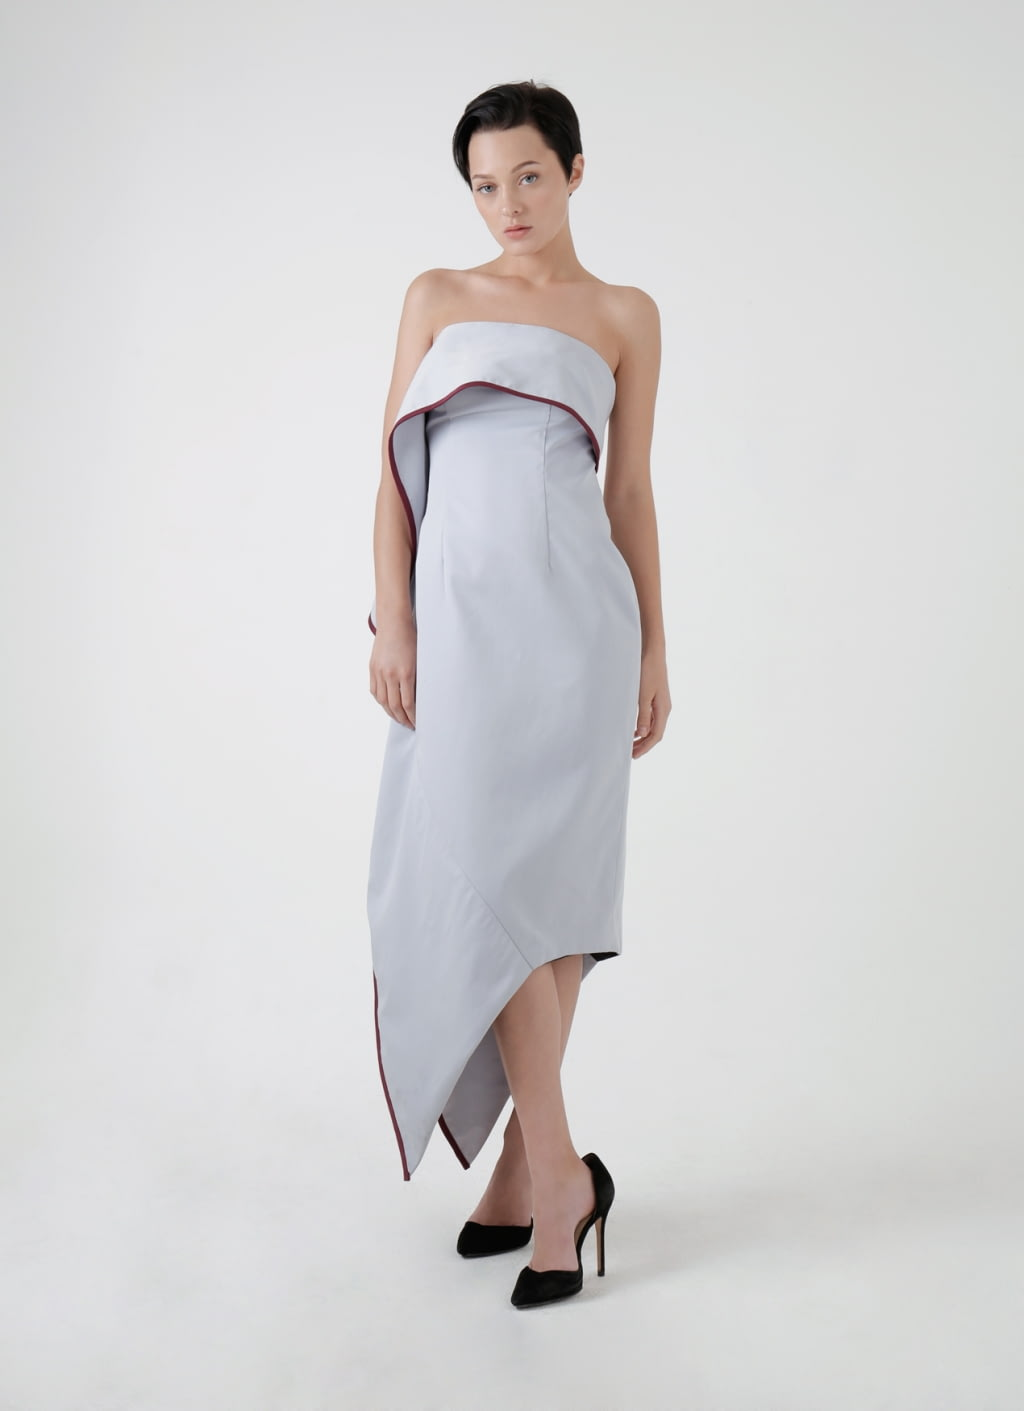 Buy original amanda rahardjo light gray contour dress at indonesia amanda rahardjo light gray contour dress ombrellifo Choice Image